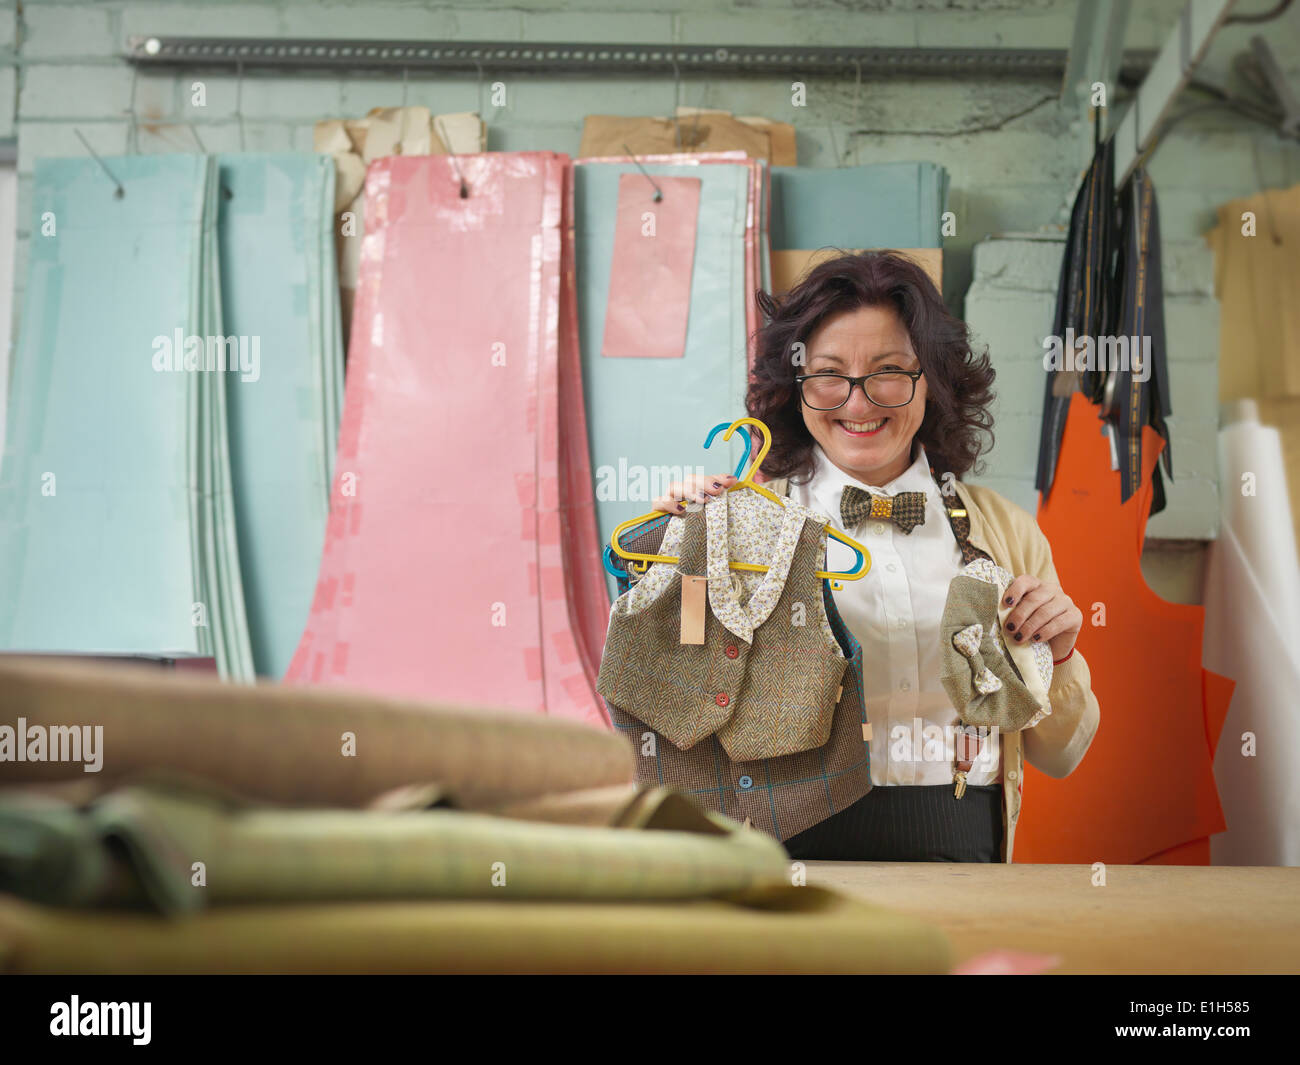 fashion designer with childrens wear in clothing factory portrait E1H585 childrens wear stock photos & childrens wear stock images alamy,Childrens Clothes Knightsbridge